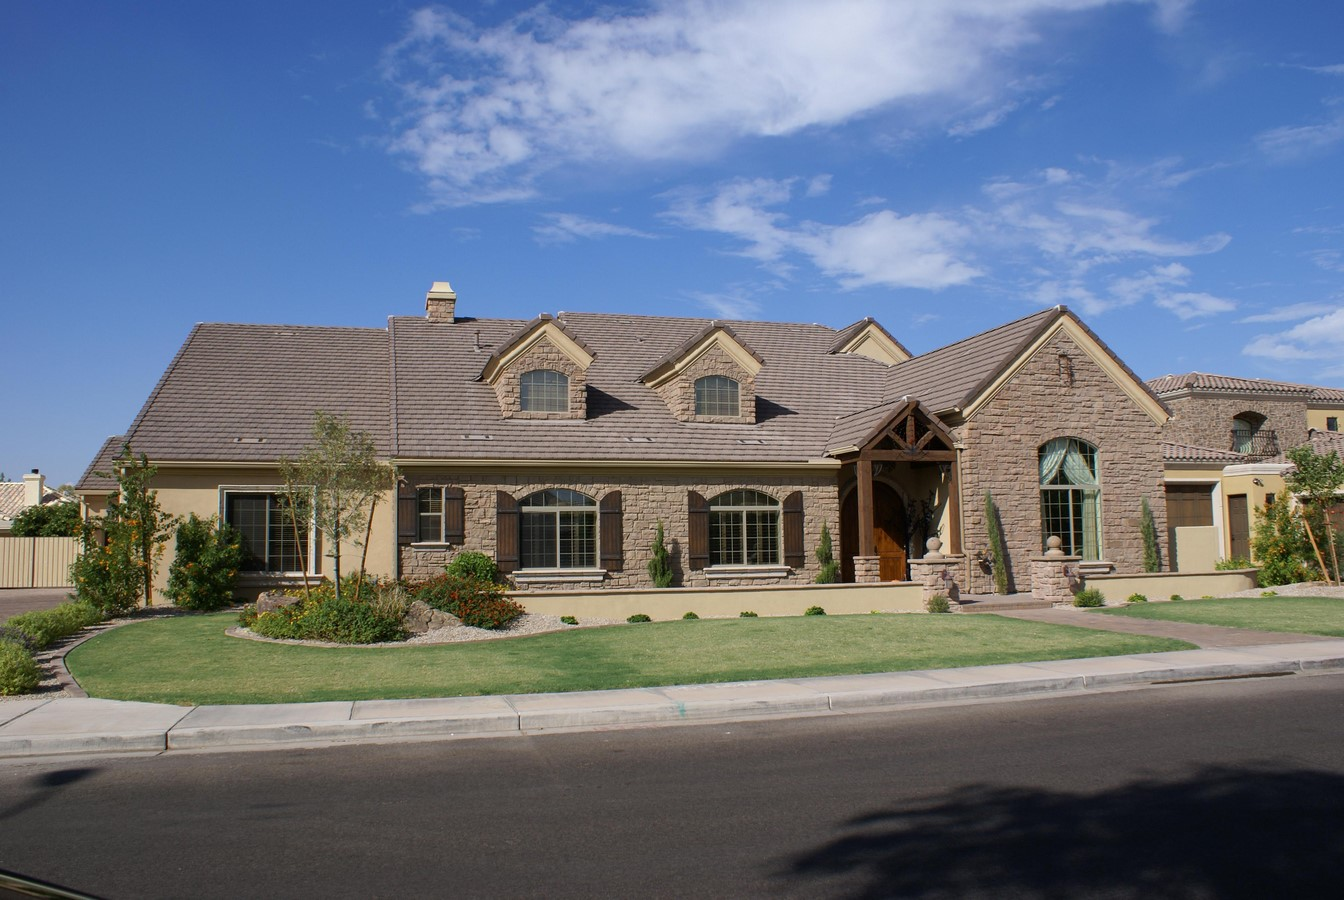 Architects in Mesa - Top 15 Architects in Mesa Sheet14